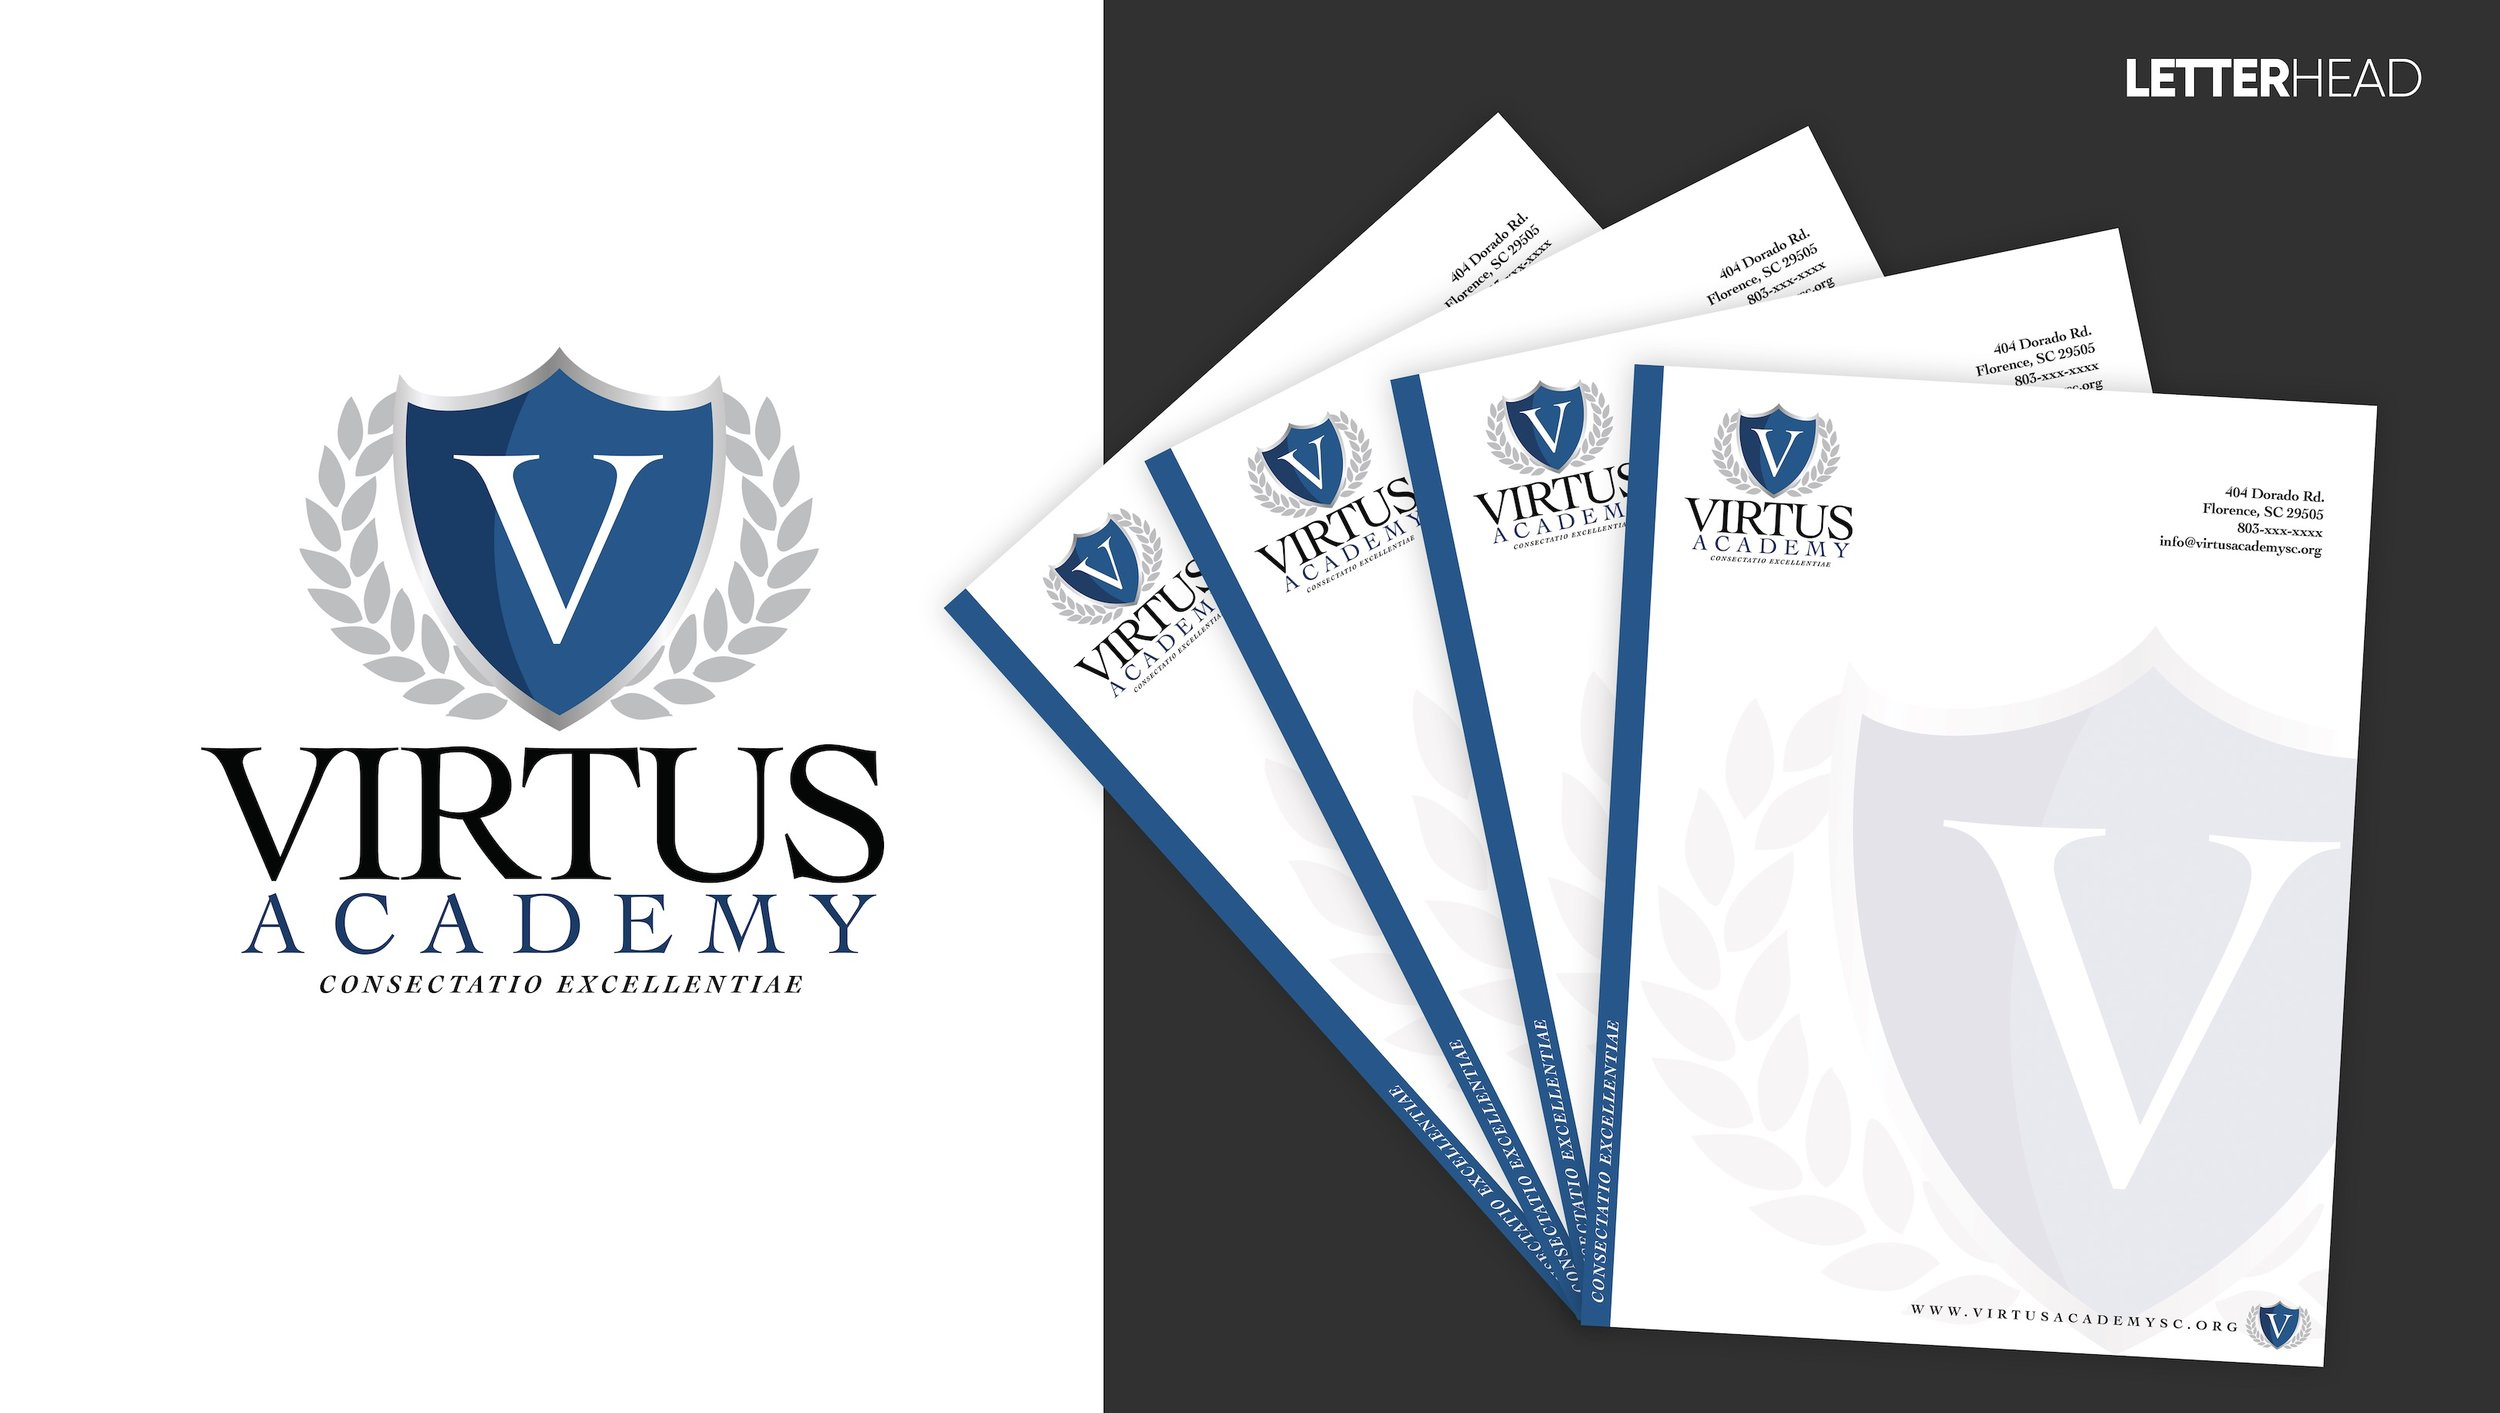 Concept letterhead design for Virtus Academy. We designed the logo here as well.